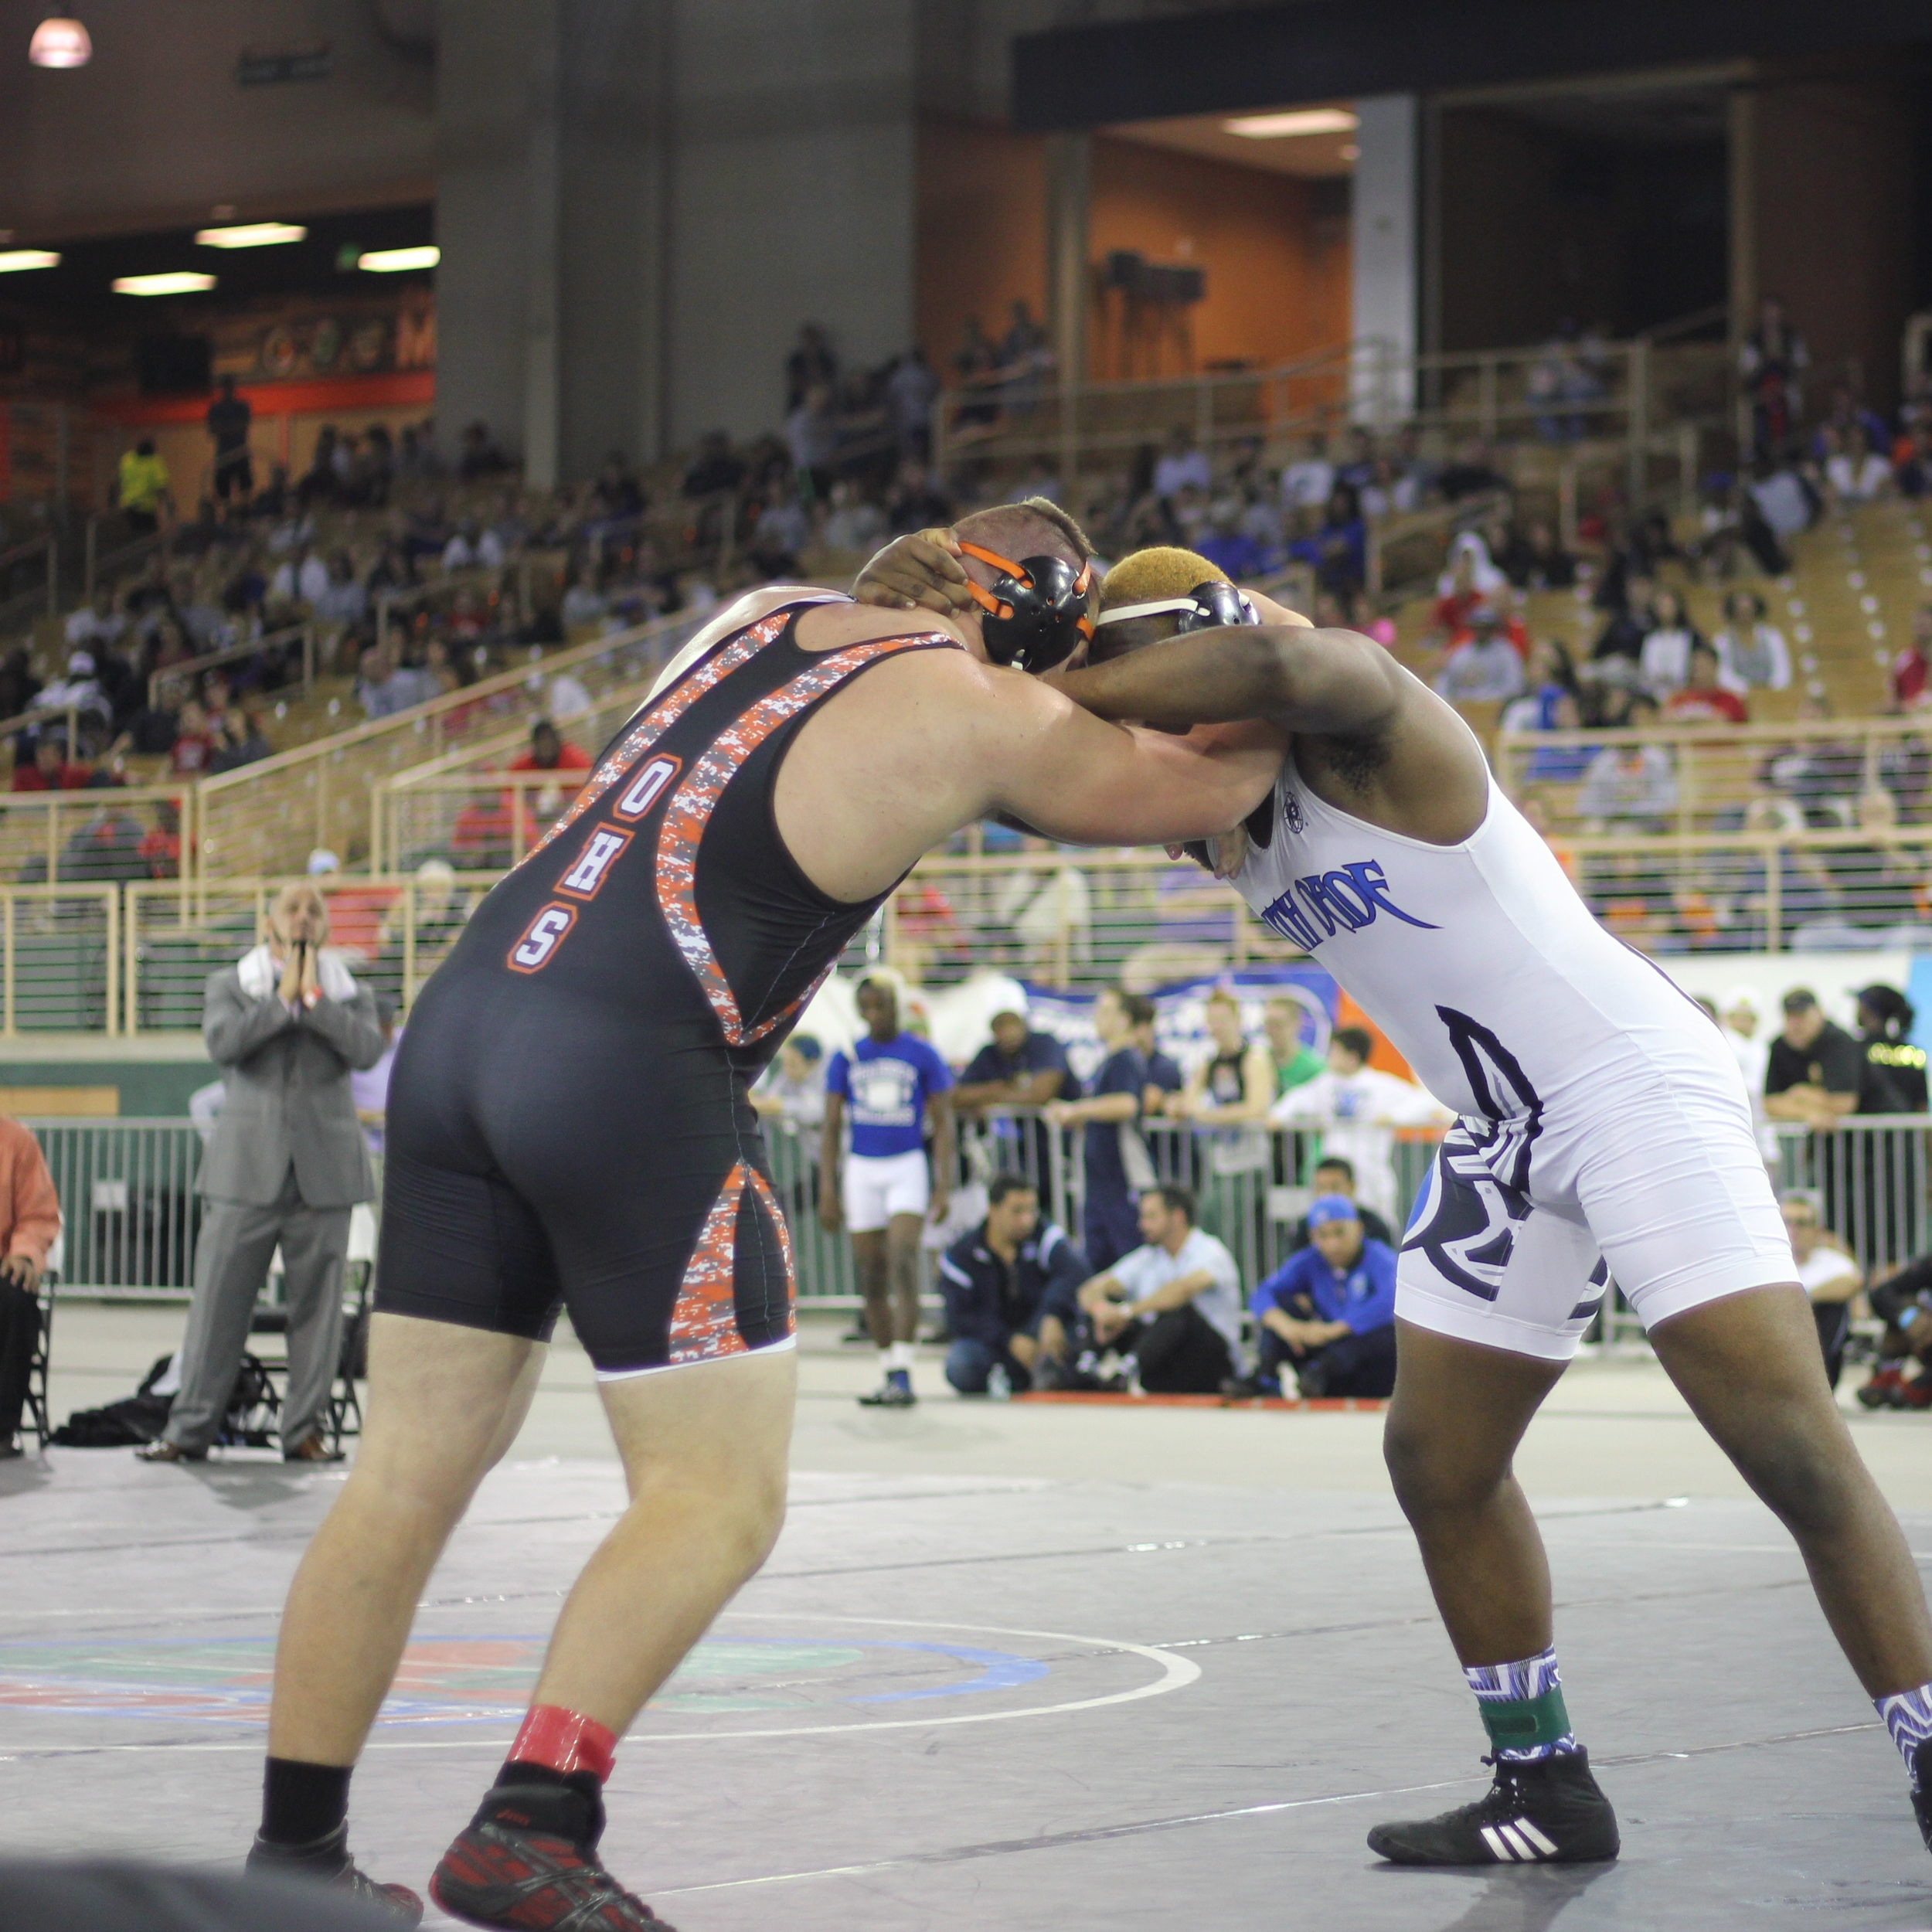 Shriner downed Taylor 5-4 to win the 2015 285 lb. title